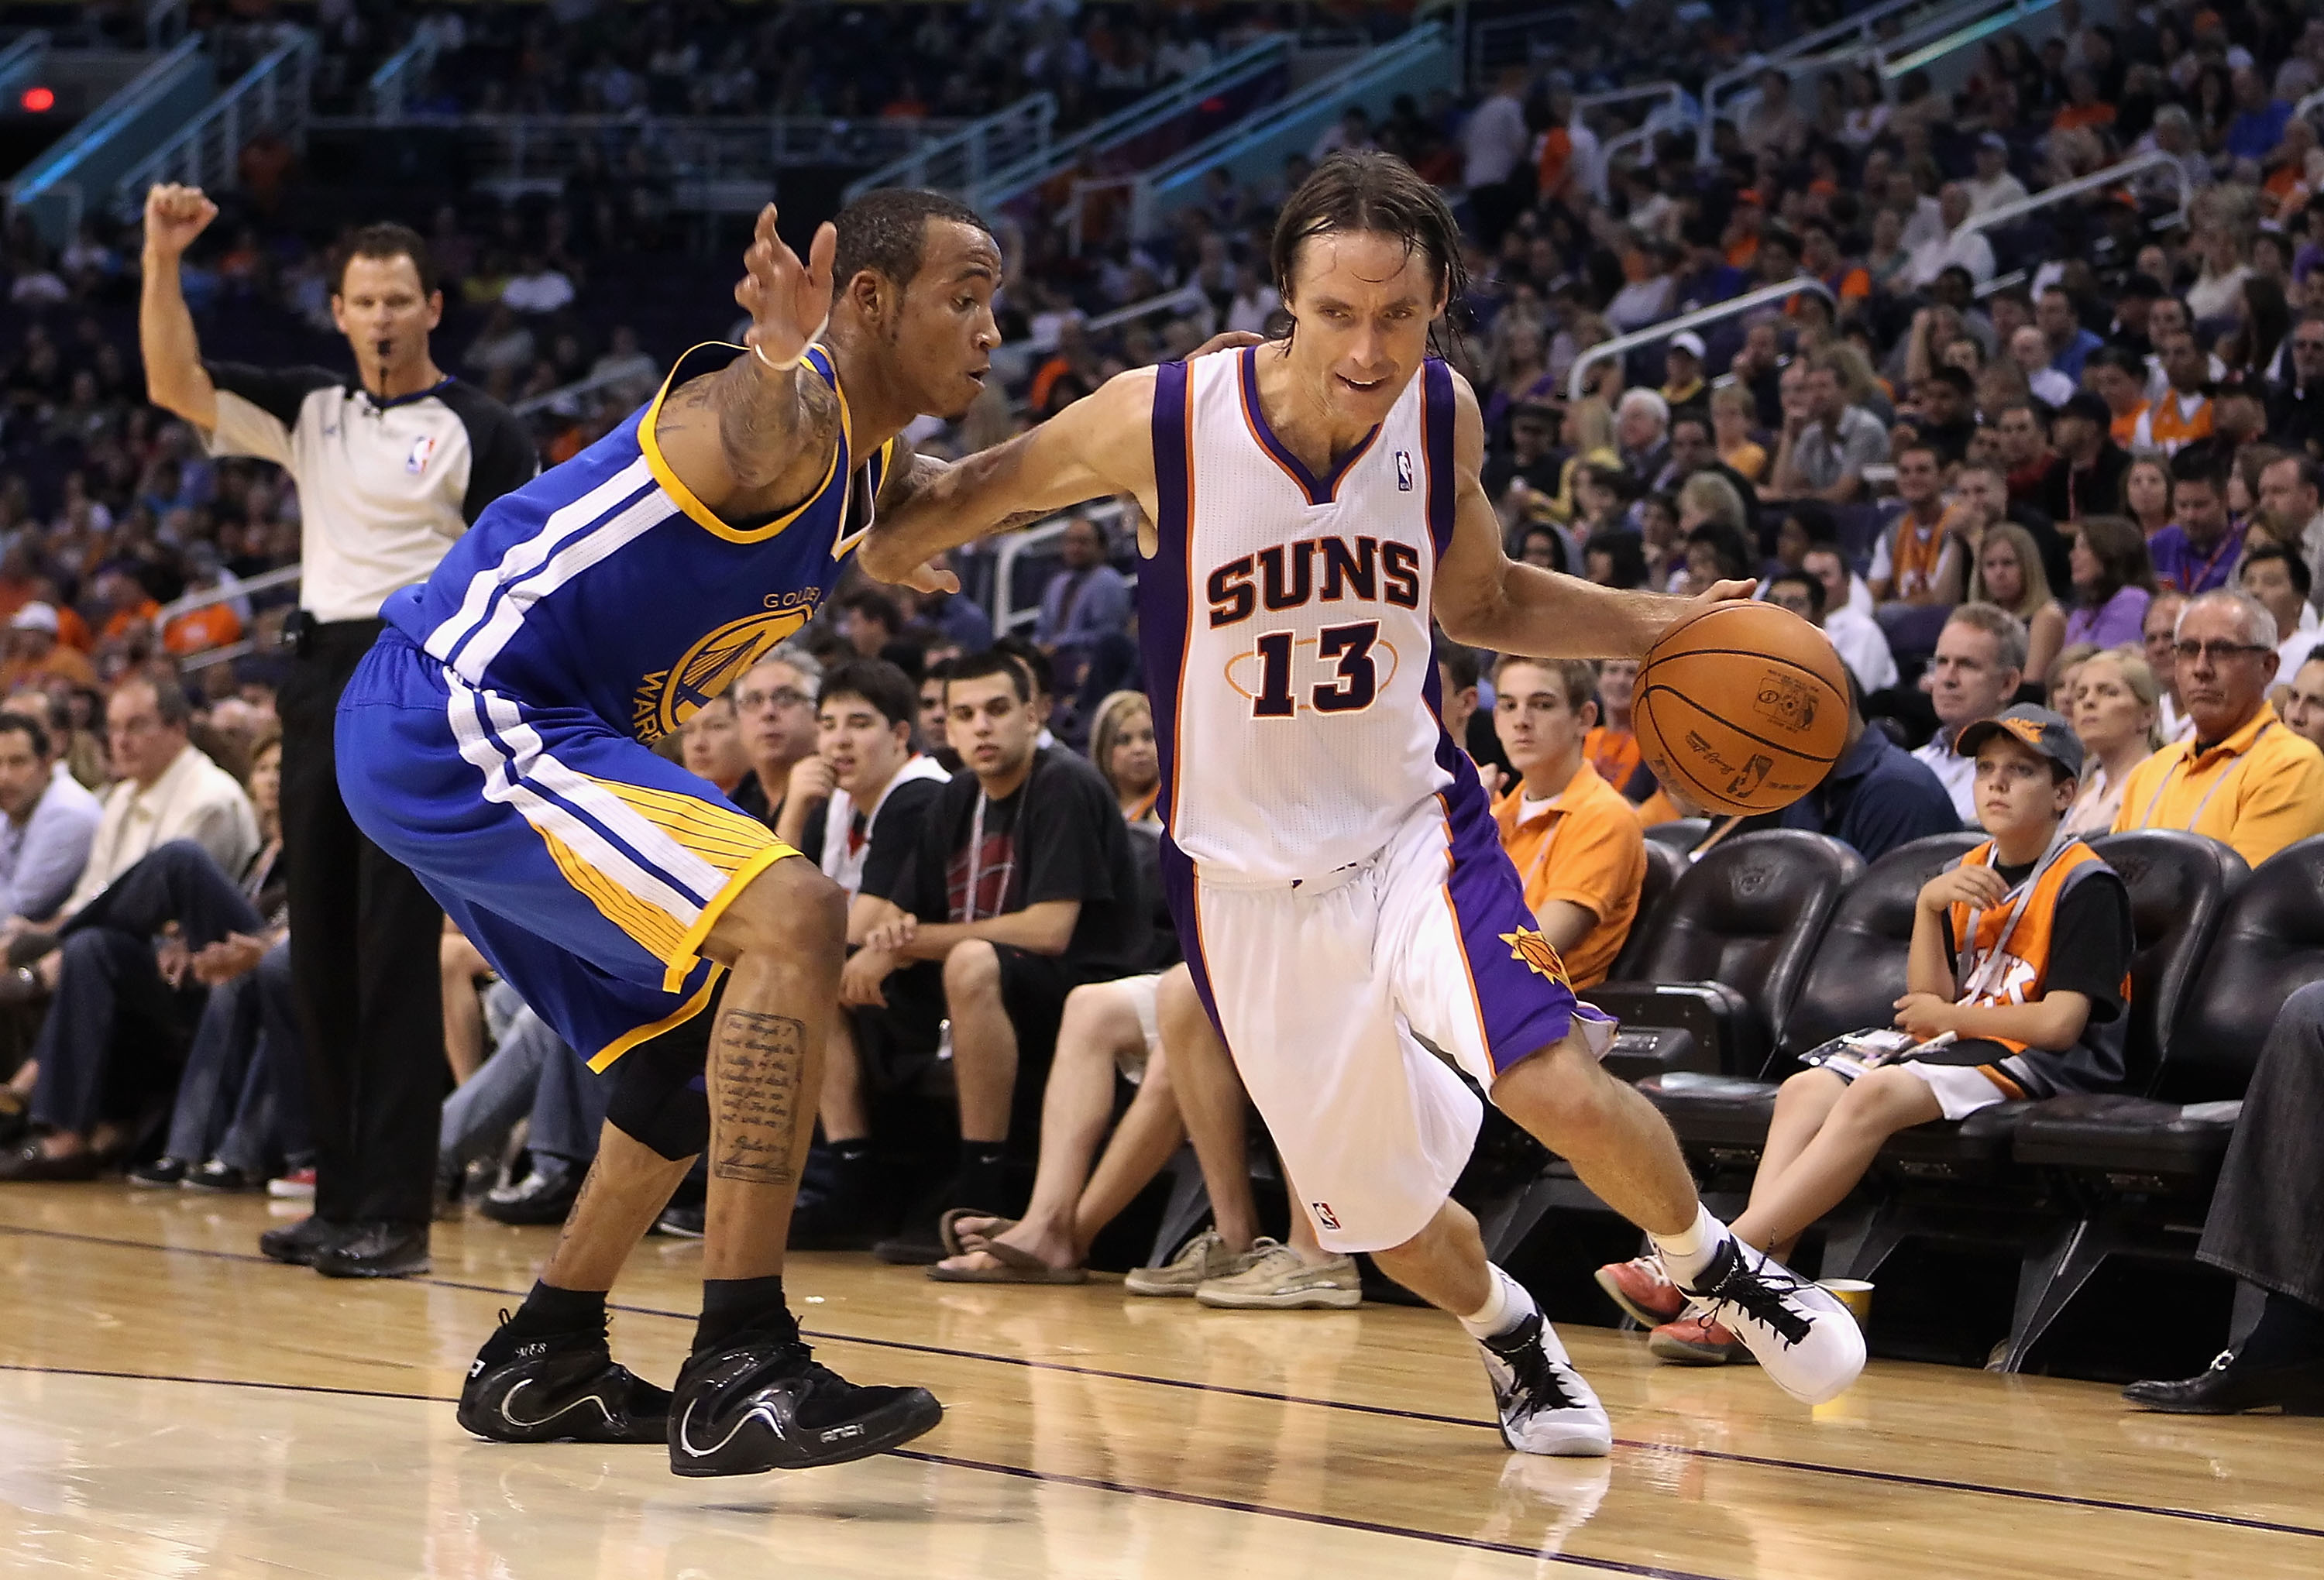 PHOENIX - OCTOBER 19:  Steve Nash #13 of the Phoenix Suns drives the ball past Monta Ellis #8 of the Golden State Warriors during the preseason NBA game at US Airways Center on October 19, 2010 in Phoenix, Arizona. NOTE TO USER: User expressly acknowledge